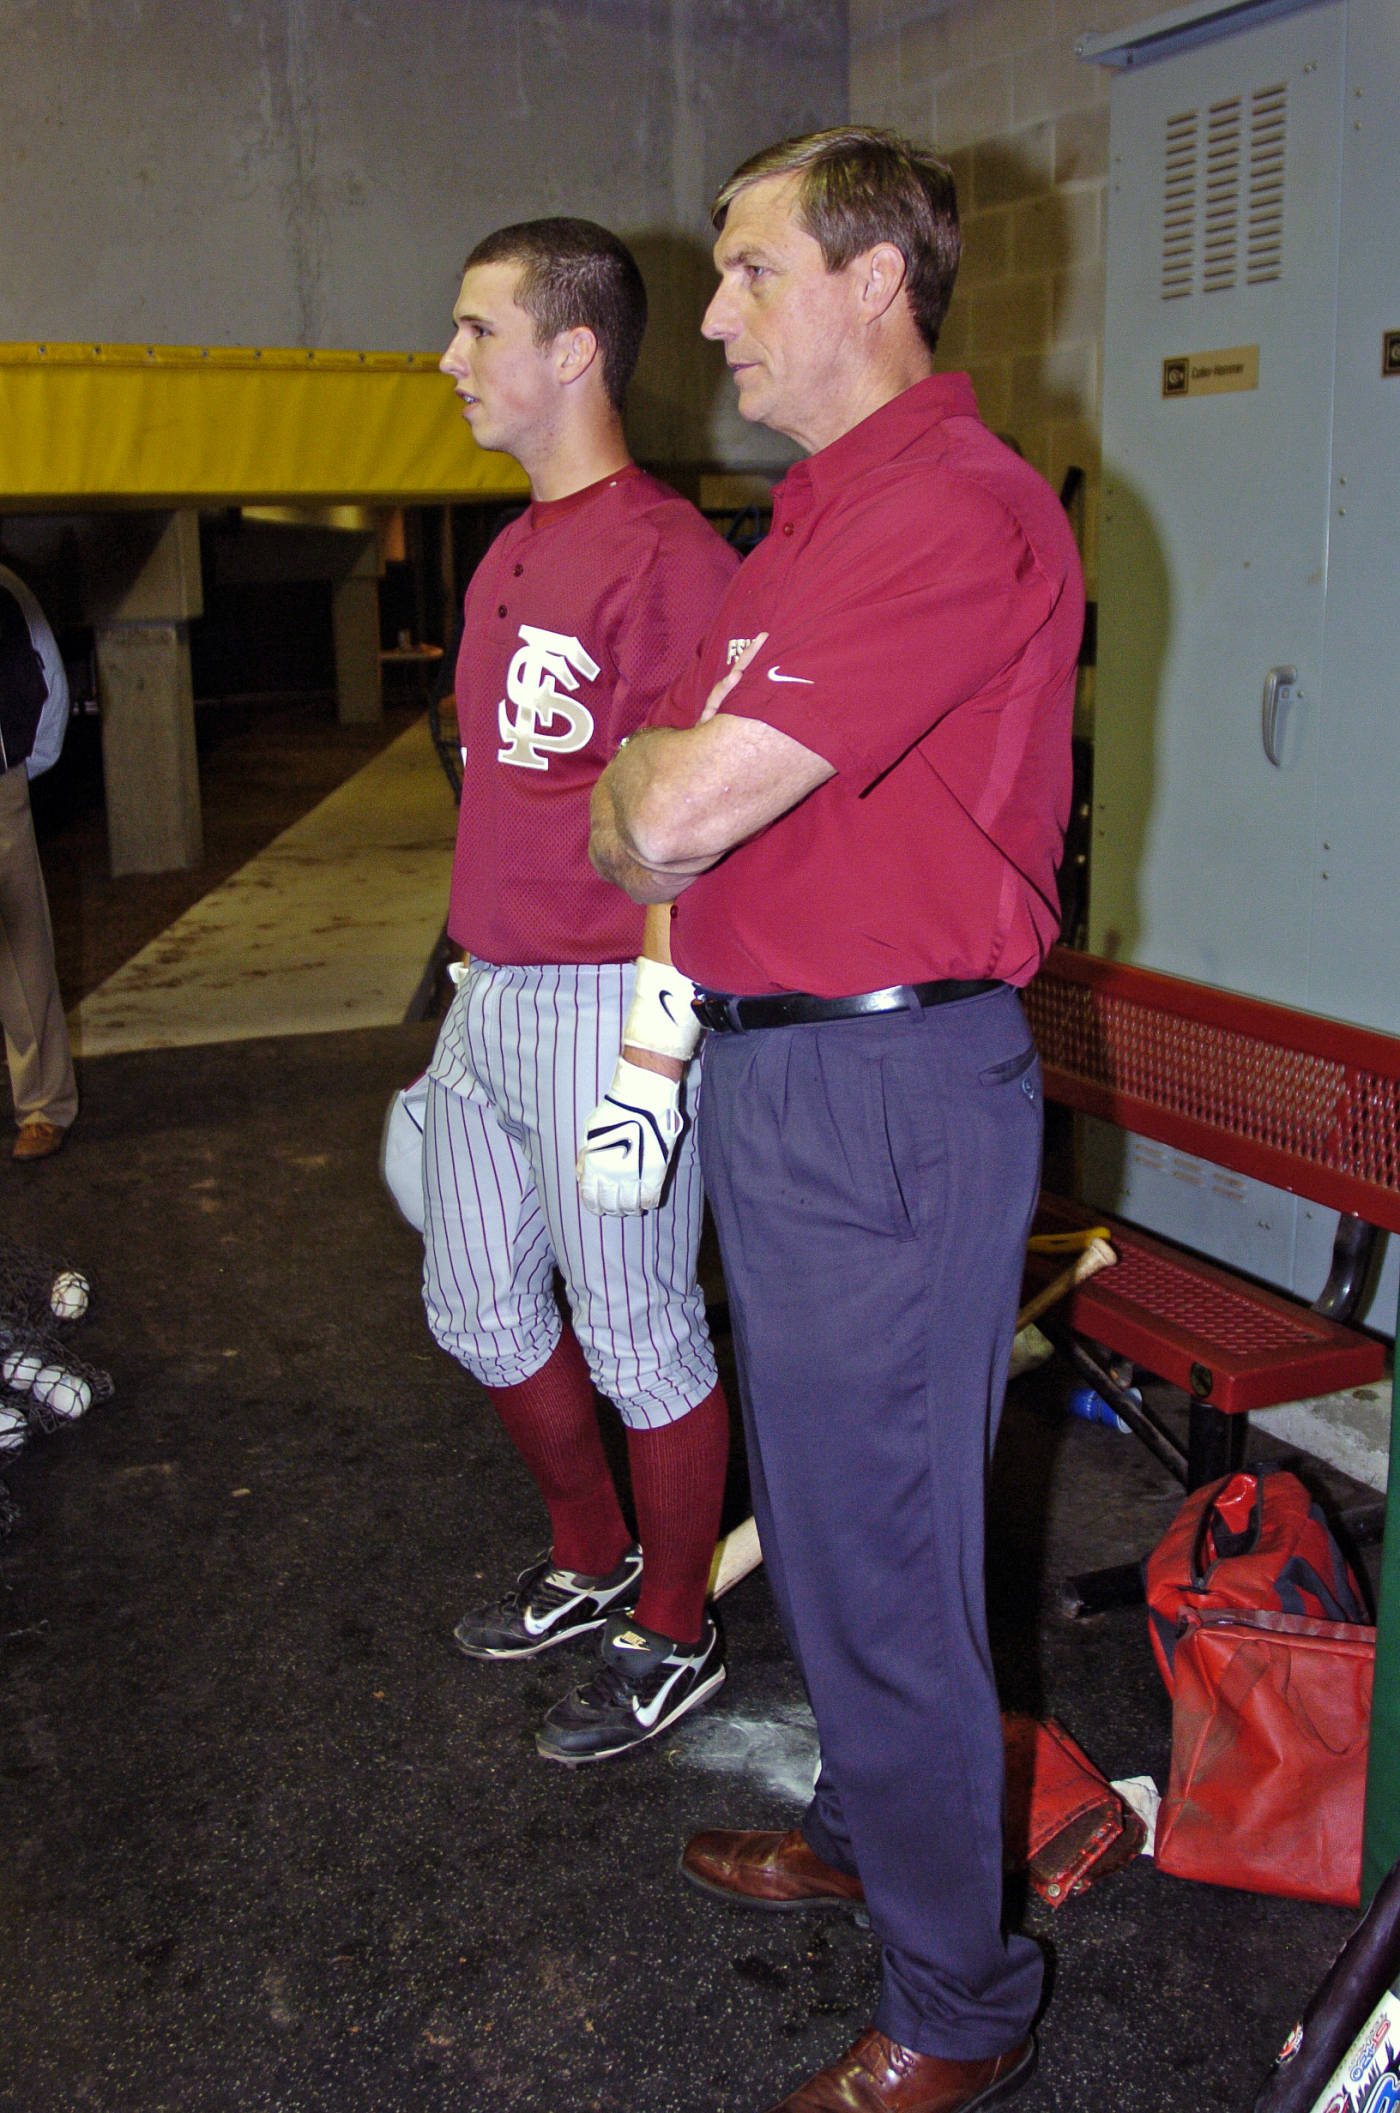 FSU Athletics Director Randy Spetman talks with catcher Buster Posey while the Seminoles take pregame batting practice in the cage.